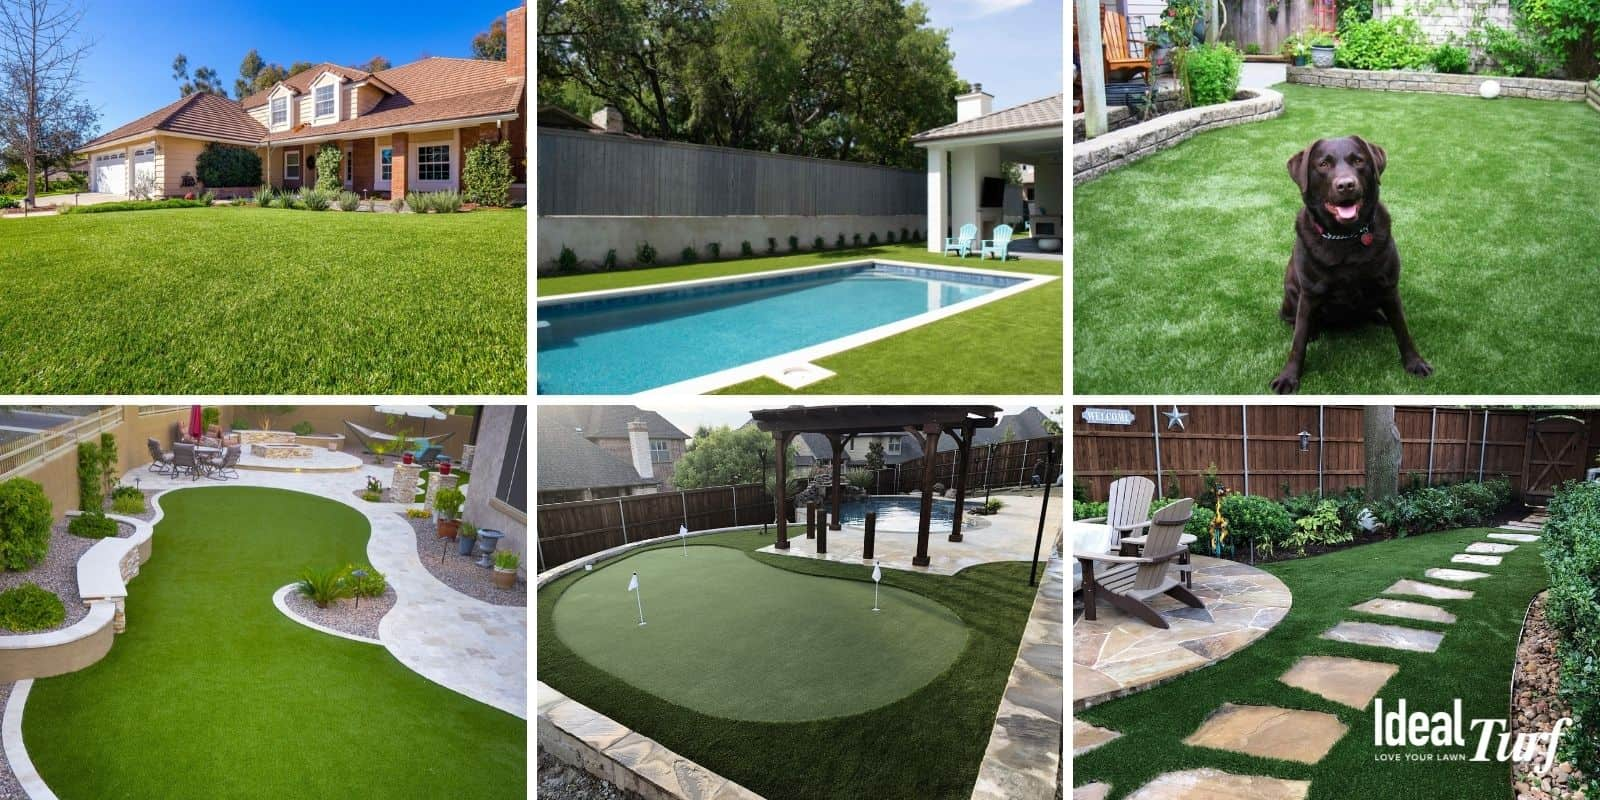 Common Residential Turf Applications